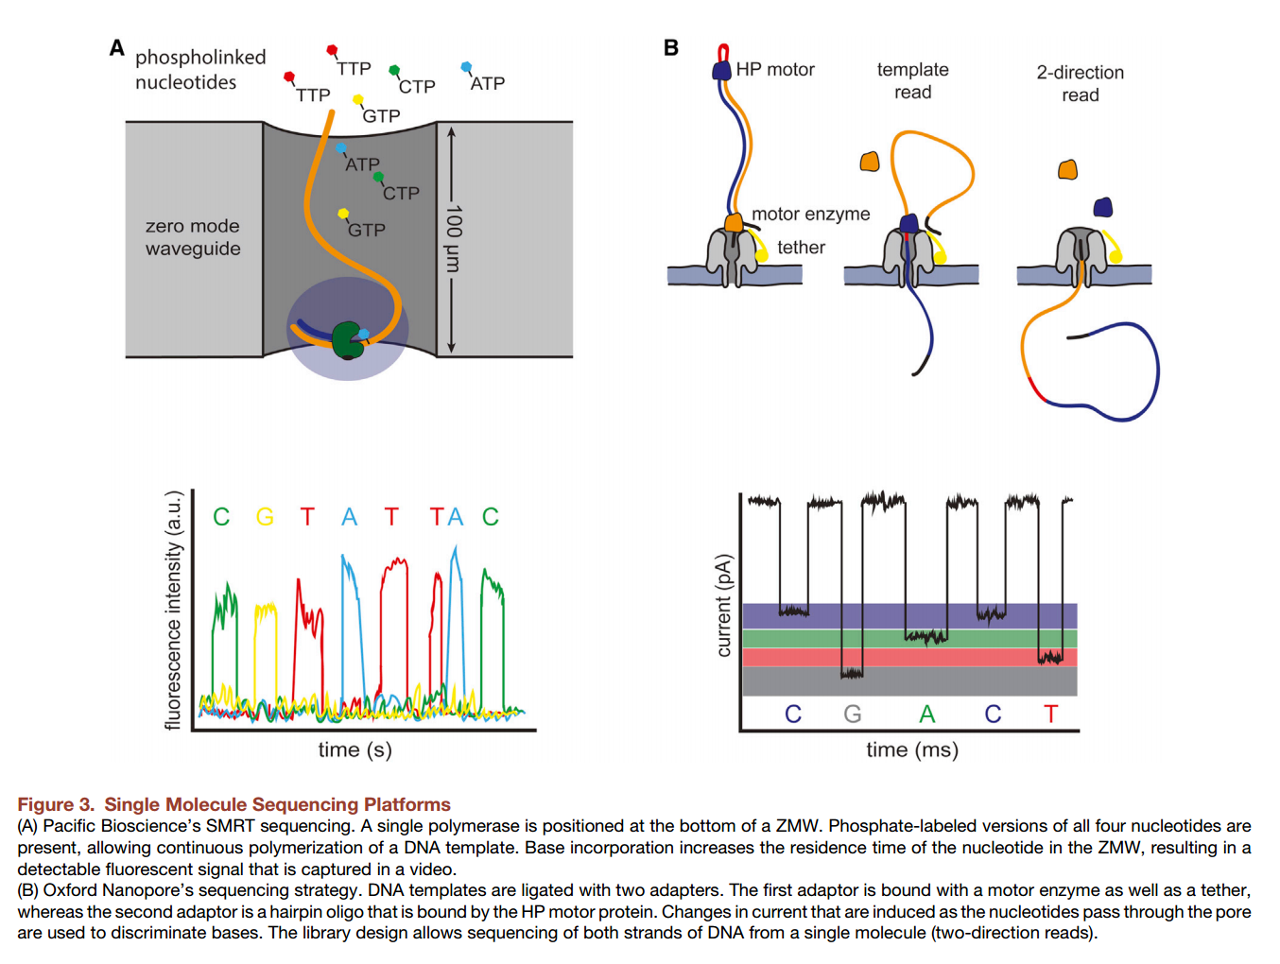 Of nanopores and isoforms < biochemistries